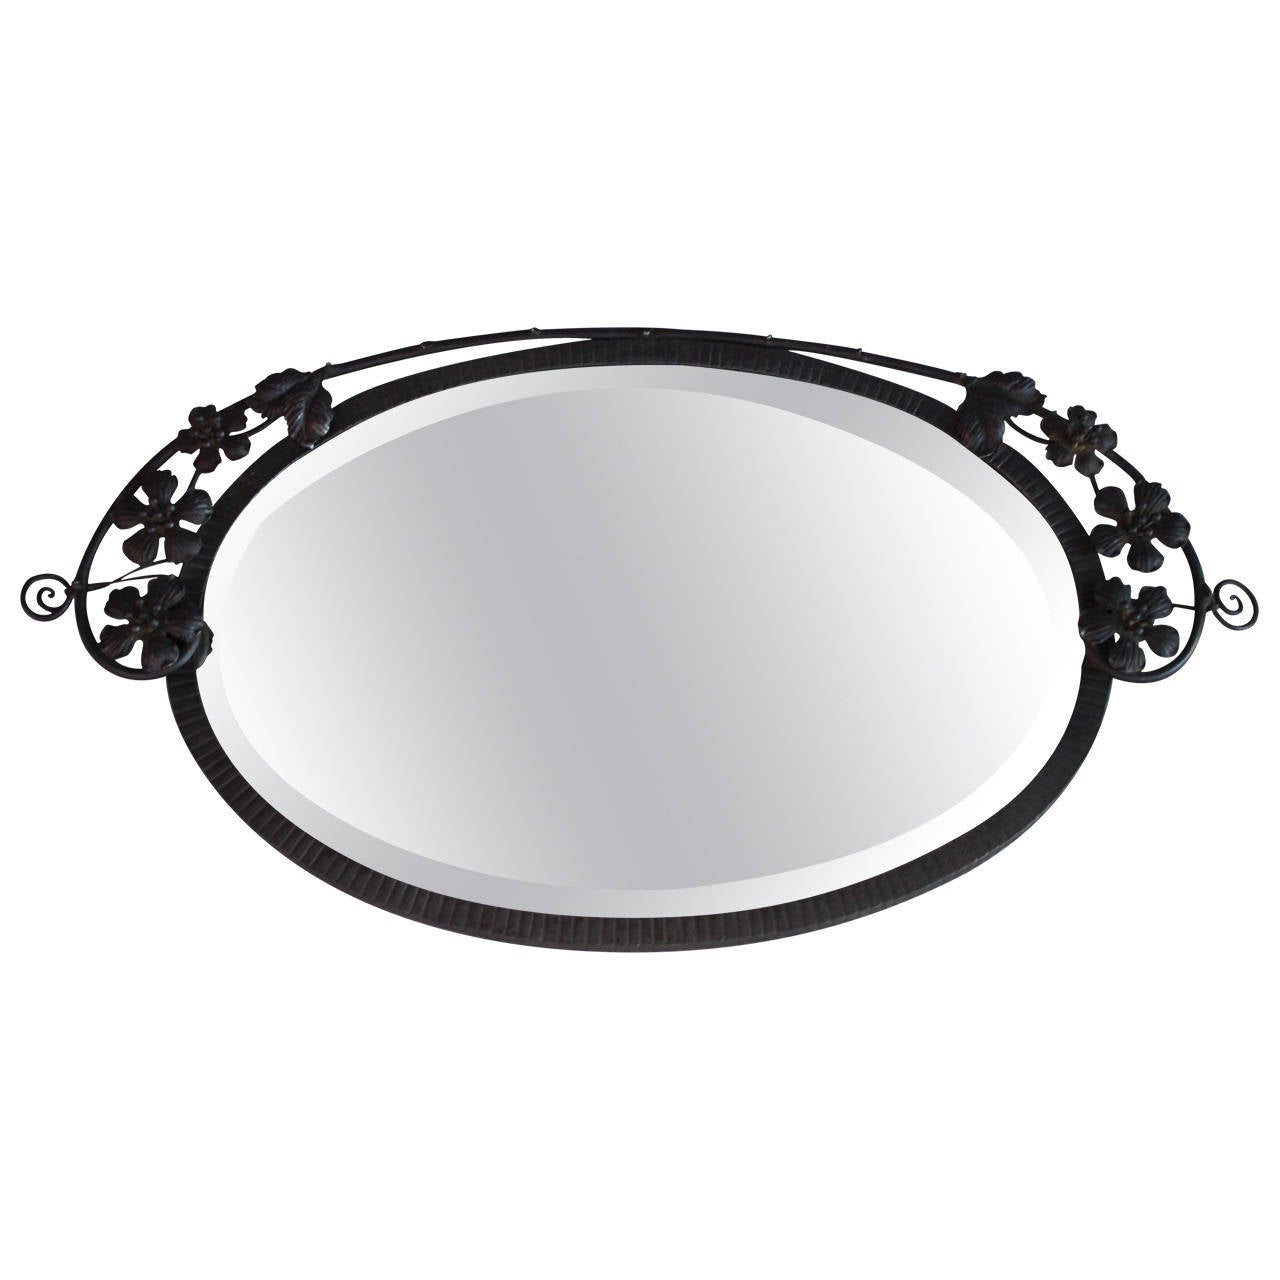 1920s wrought iron oval mirror spanish revival at 1stdibs for Wrought iron mirror